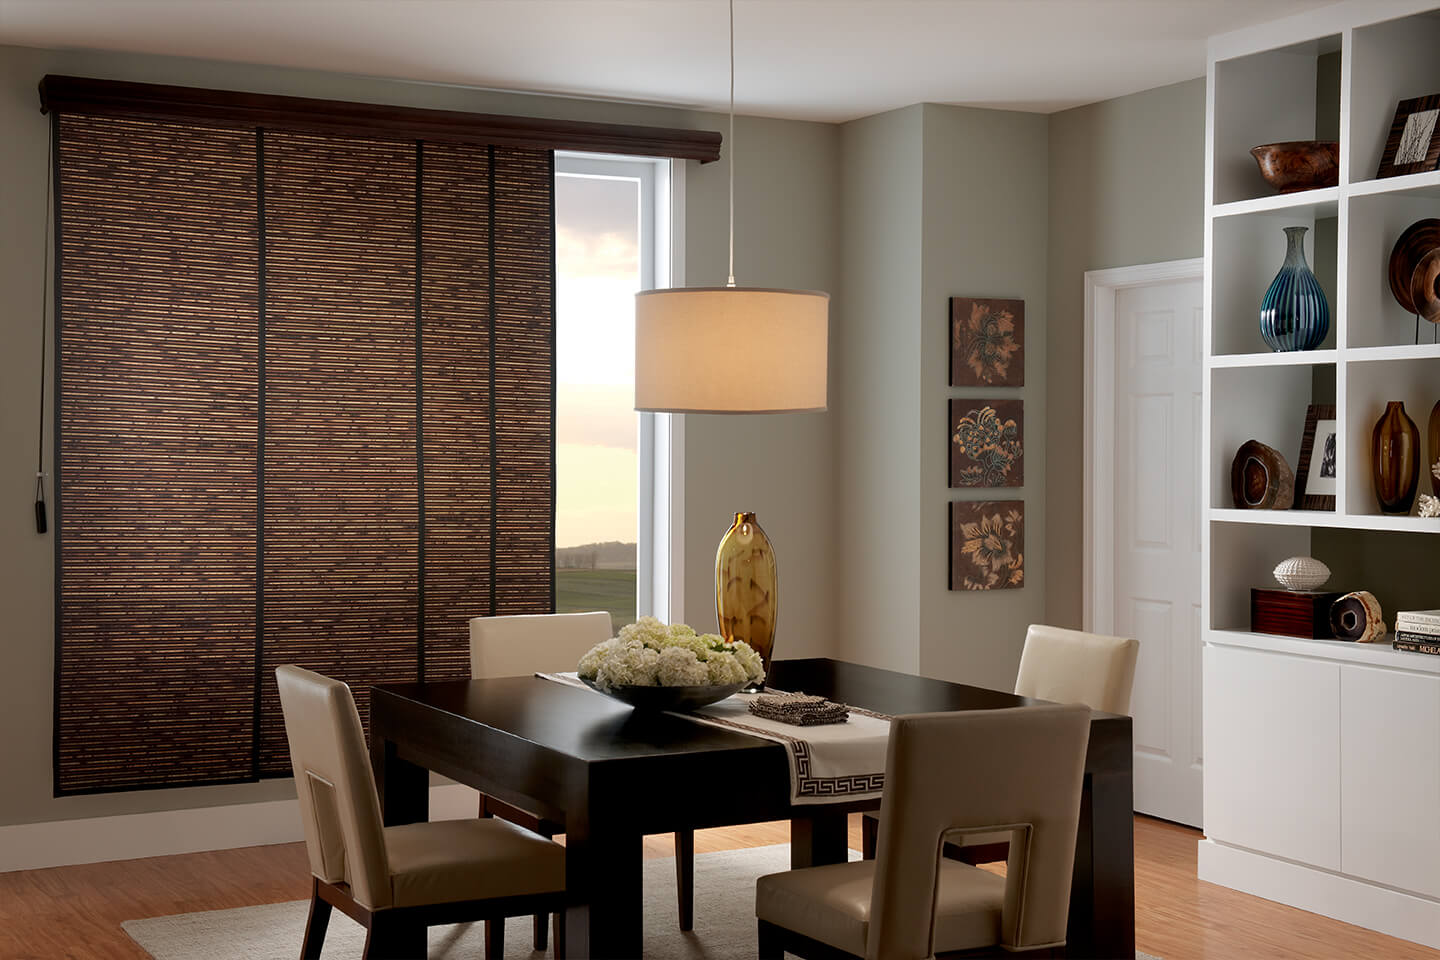 custom sliding panels costco bali blinds and shades. Black Bedroom Furniture Sets. Home Design Ideas